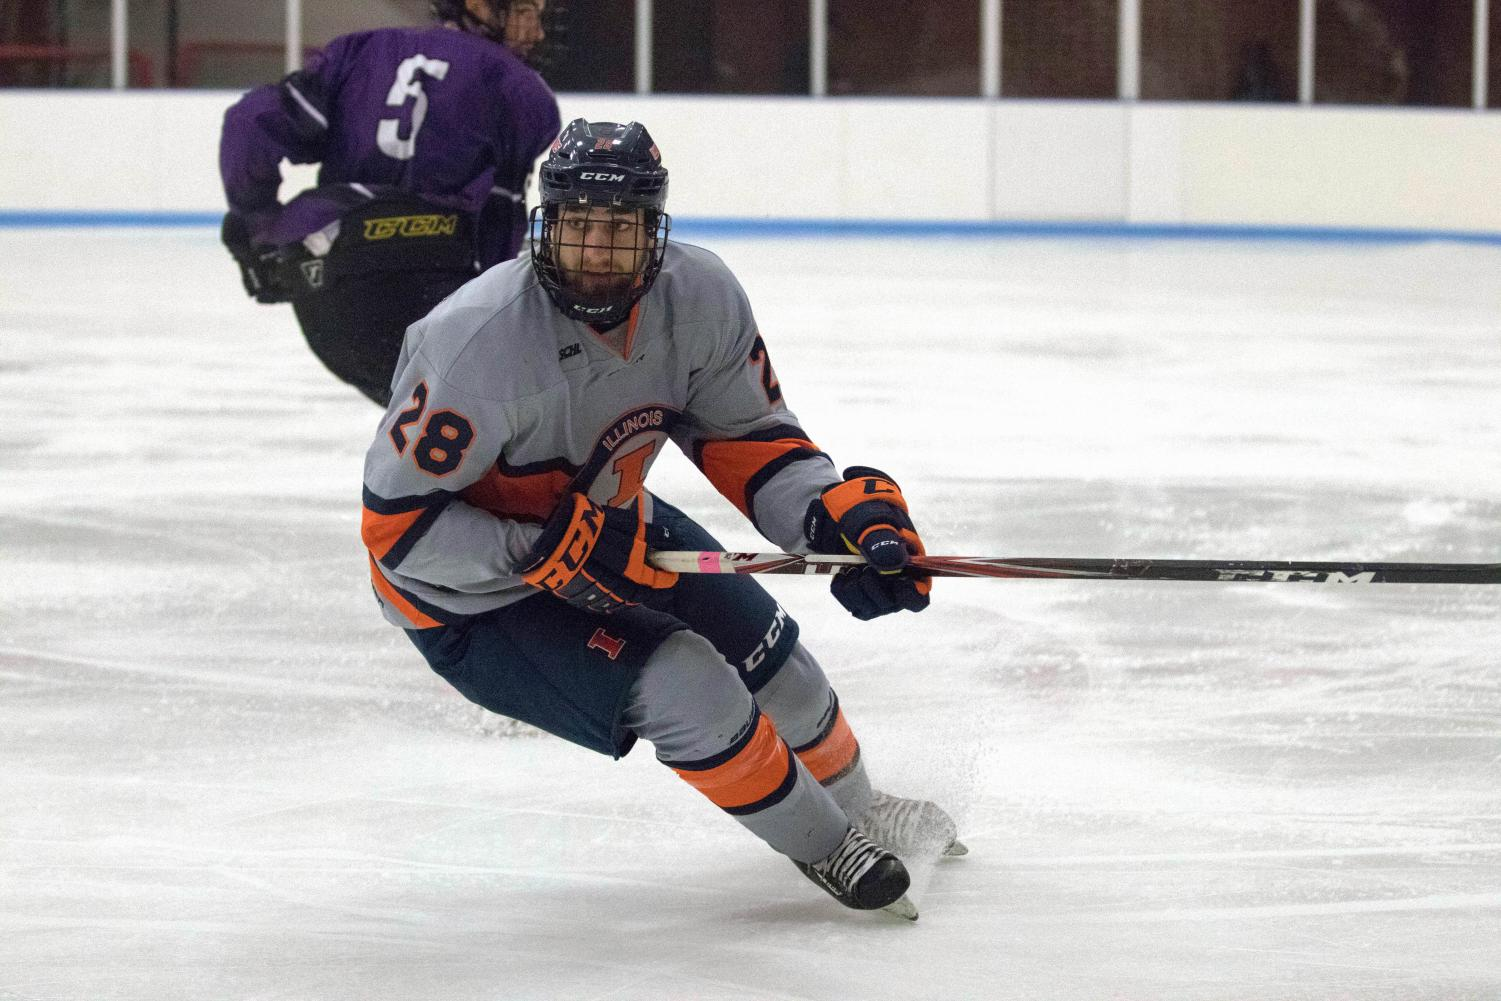 Evan Sabo (28) skates up to the boards to take possession of the puck from McKendree at the Ice Arena on Friday, Oct. 13th. Illinois beat McKendree 4-2.